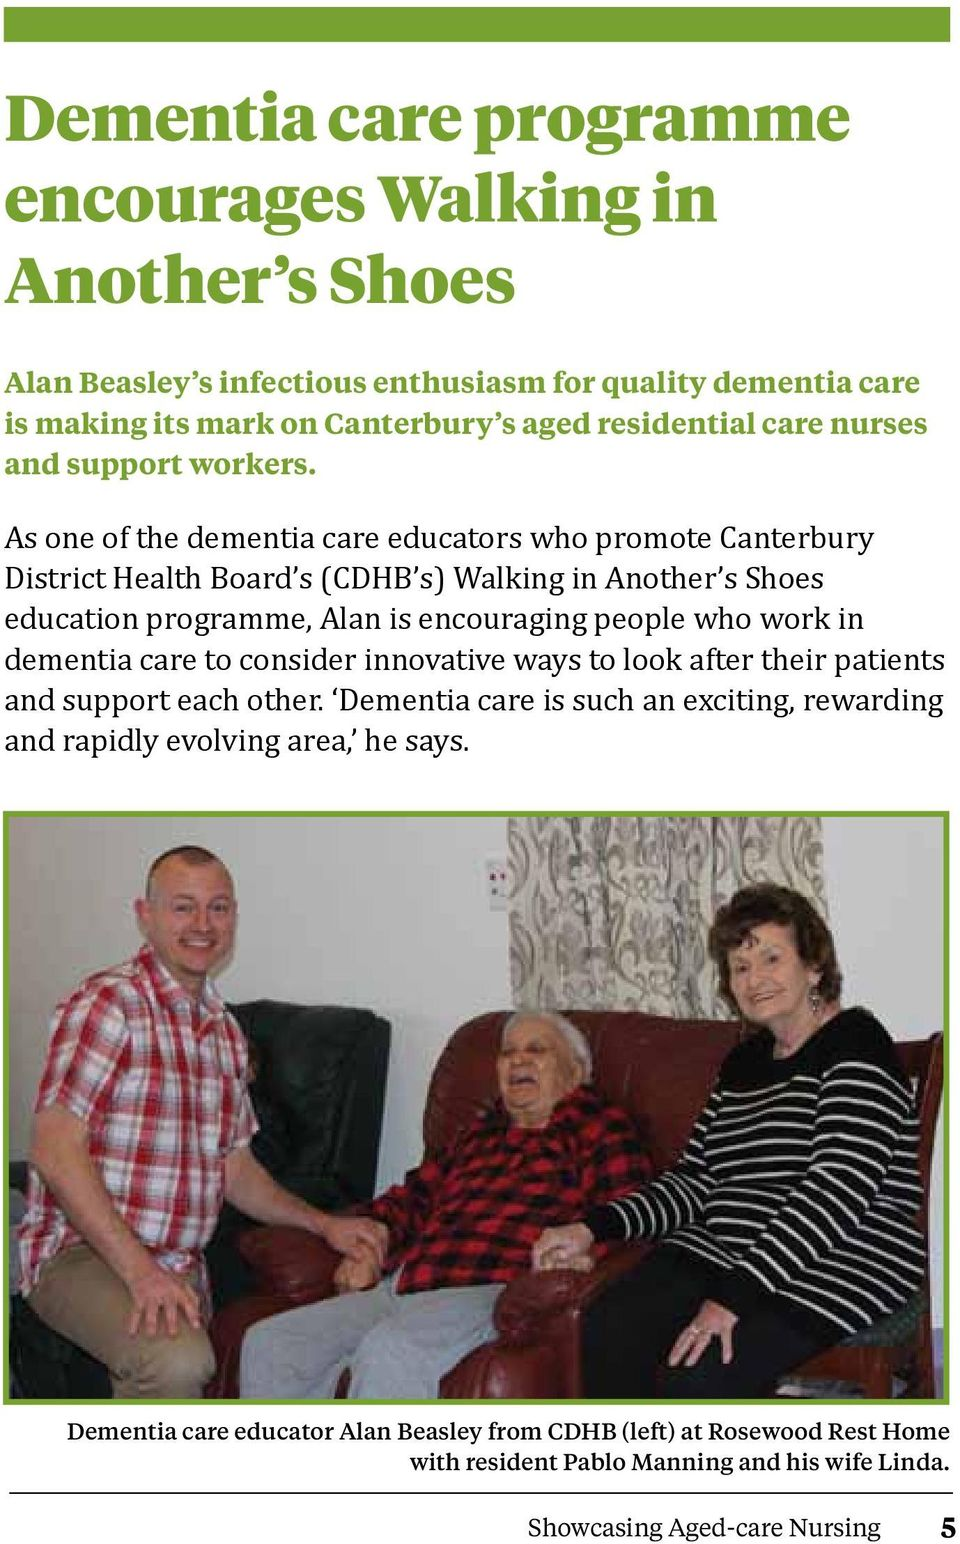 As one of the dementia care educators who promote Canterbury District Health Board s (CDHB s) Walking in Another s Shoes education programme, Alan is encouraging people who work